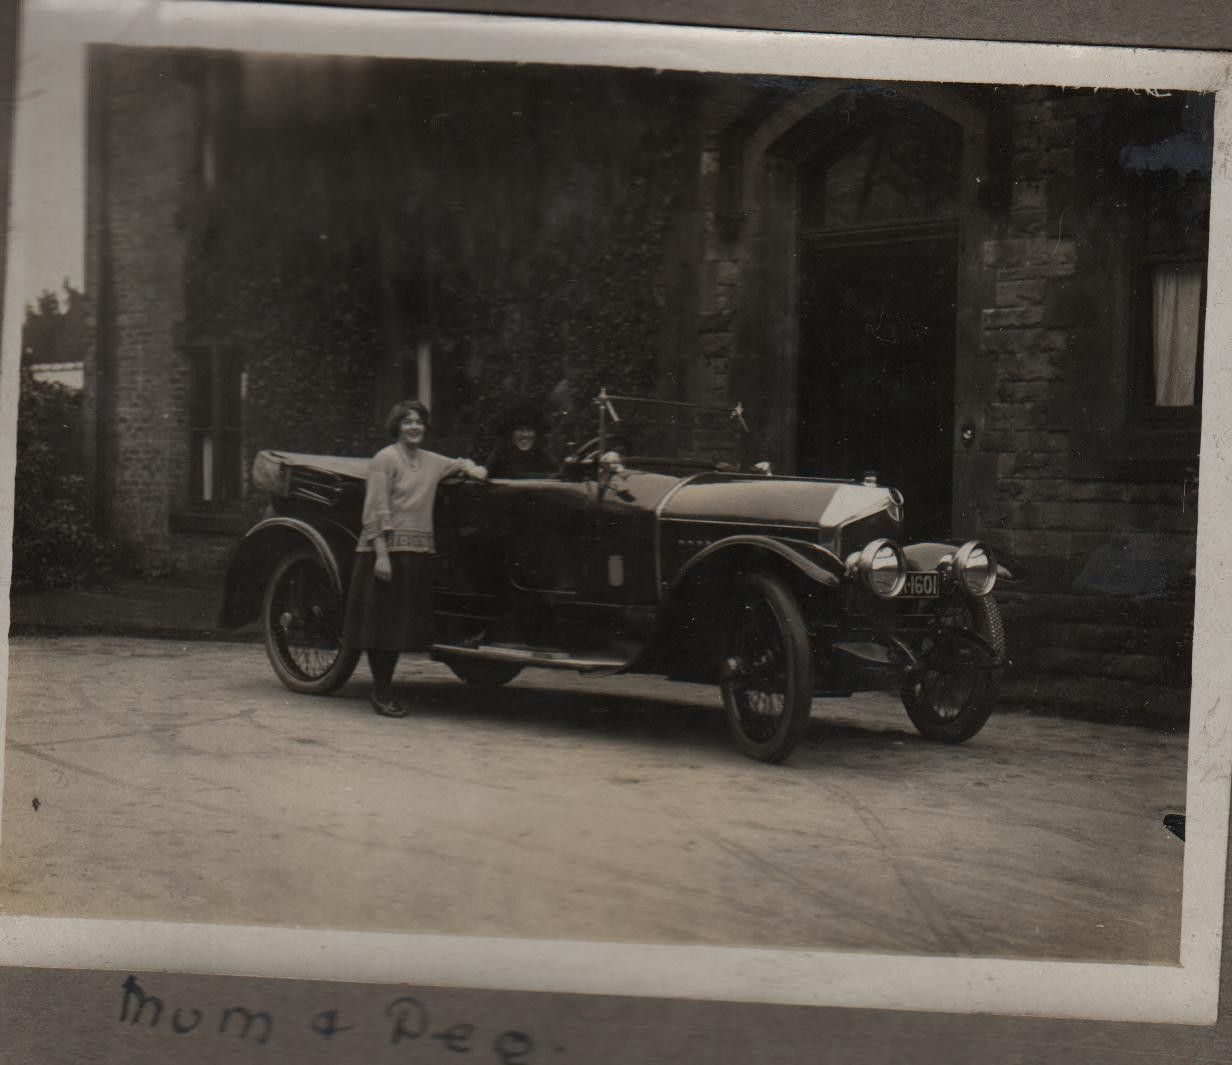 1921: Mum and Peg